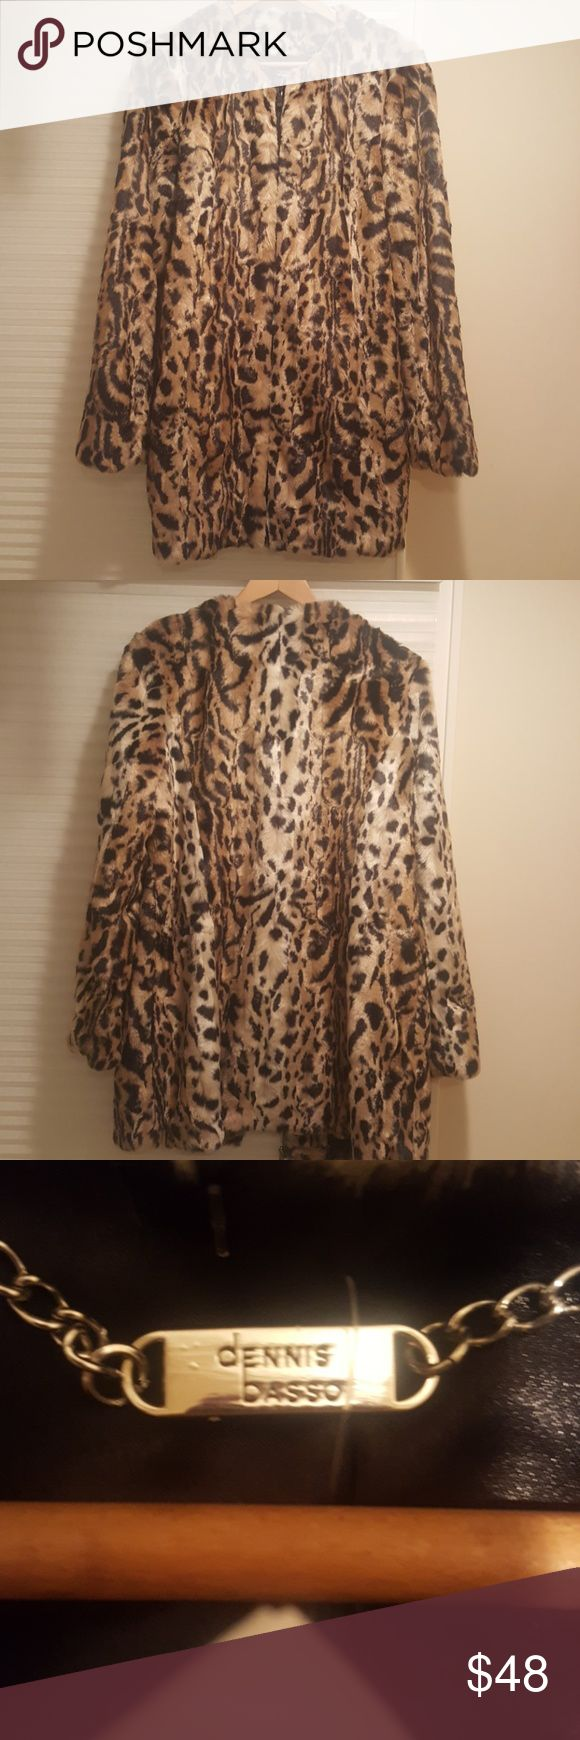 "Leopard Chic coat Incredibly soft, super chic leopard coat, zip up front, two outer and two inter pockets, fully lined.    *PLEASE NOTE:  This is a new with tags cost from a designer sample collection.  Though it is marked as a ""S"", its truly a M/L. Dennis Basso Jackets & Coats"